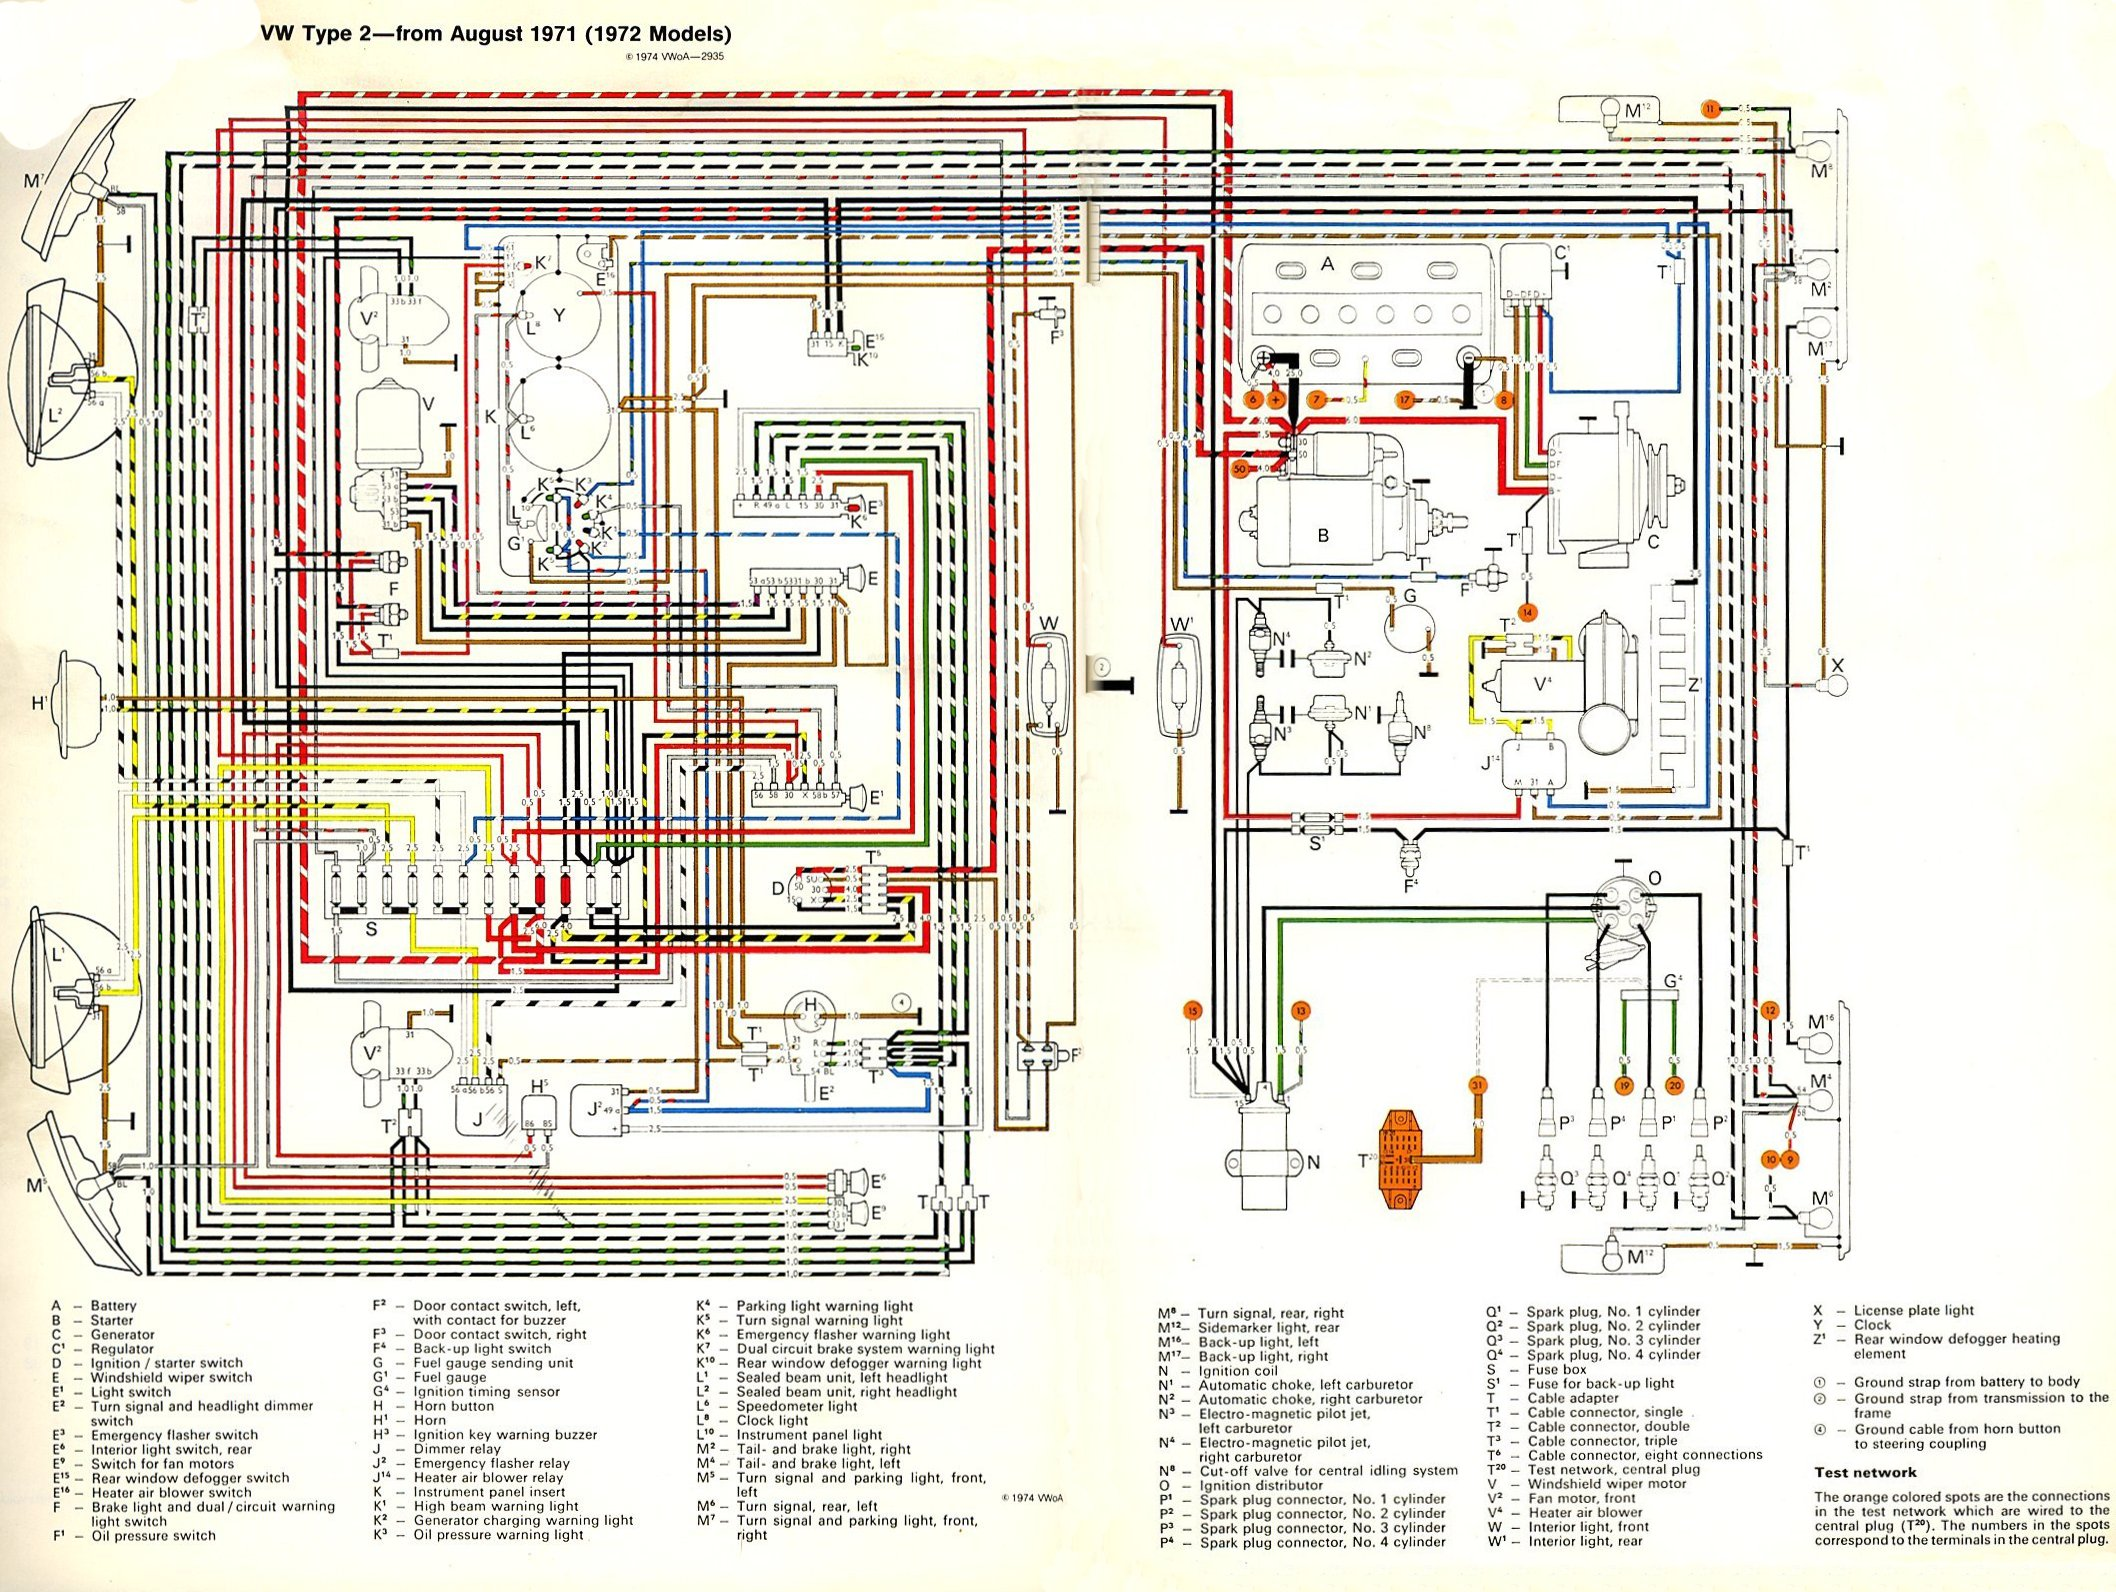 bus_1972_wiring wiring diagram for 1971 vw bus readingrat net 1971 vw bus wiring diagram at mifinder.co